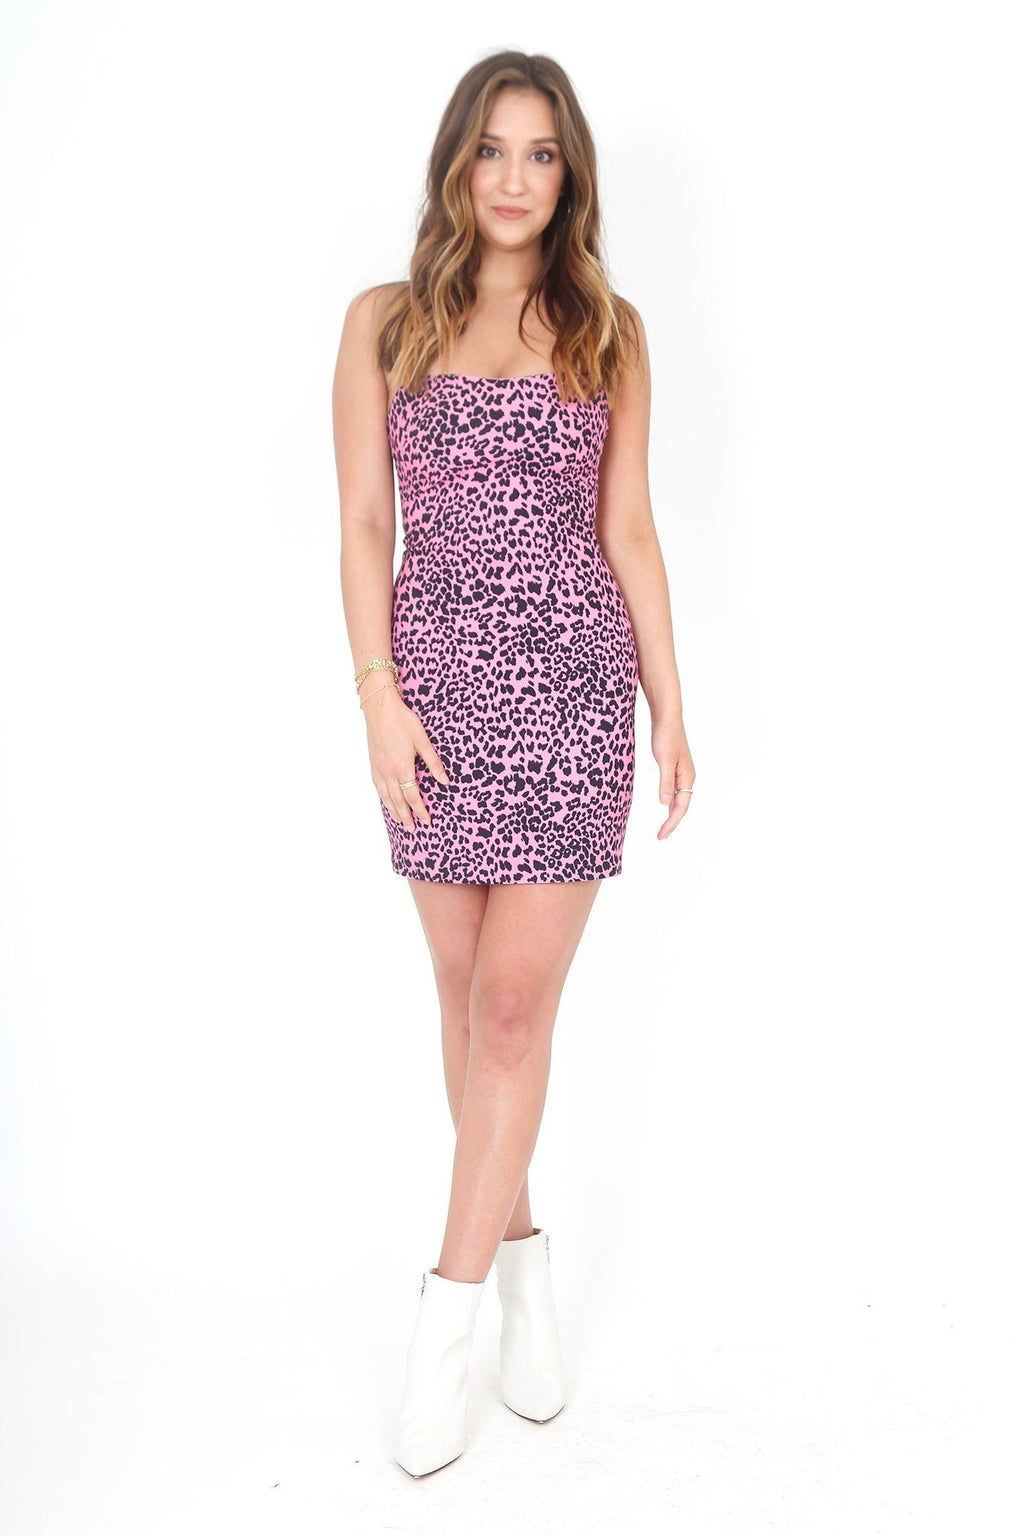 LIKELY | Neon Pink Leopard Lauren's Mini Dress